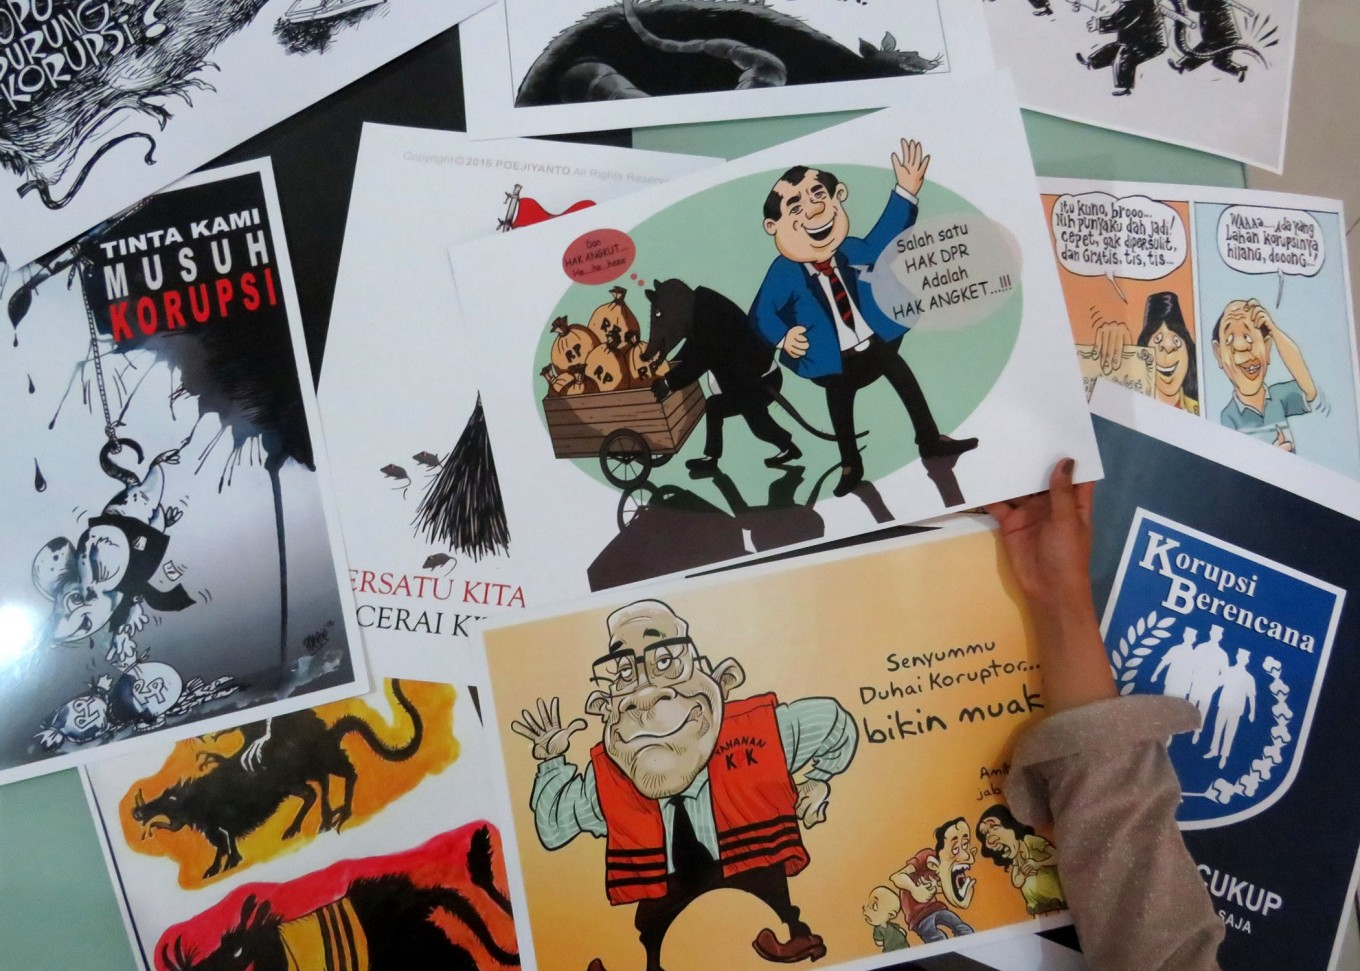 Anti-Corruption Cartoon Exhibition to be held in Malang